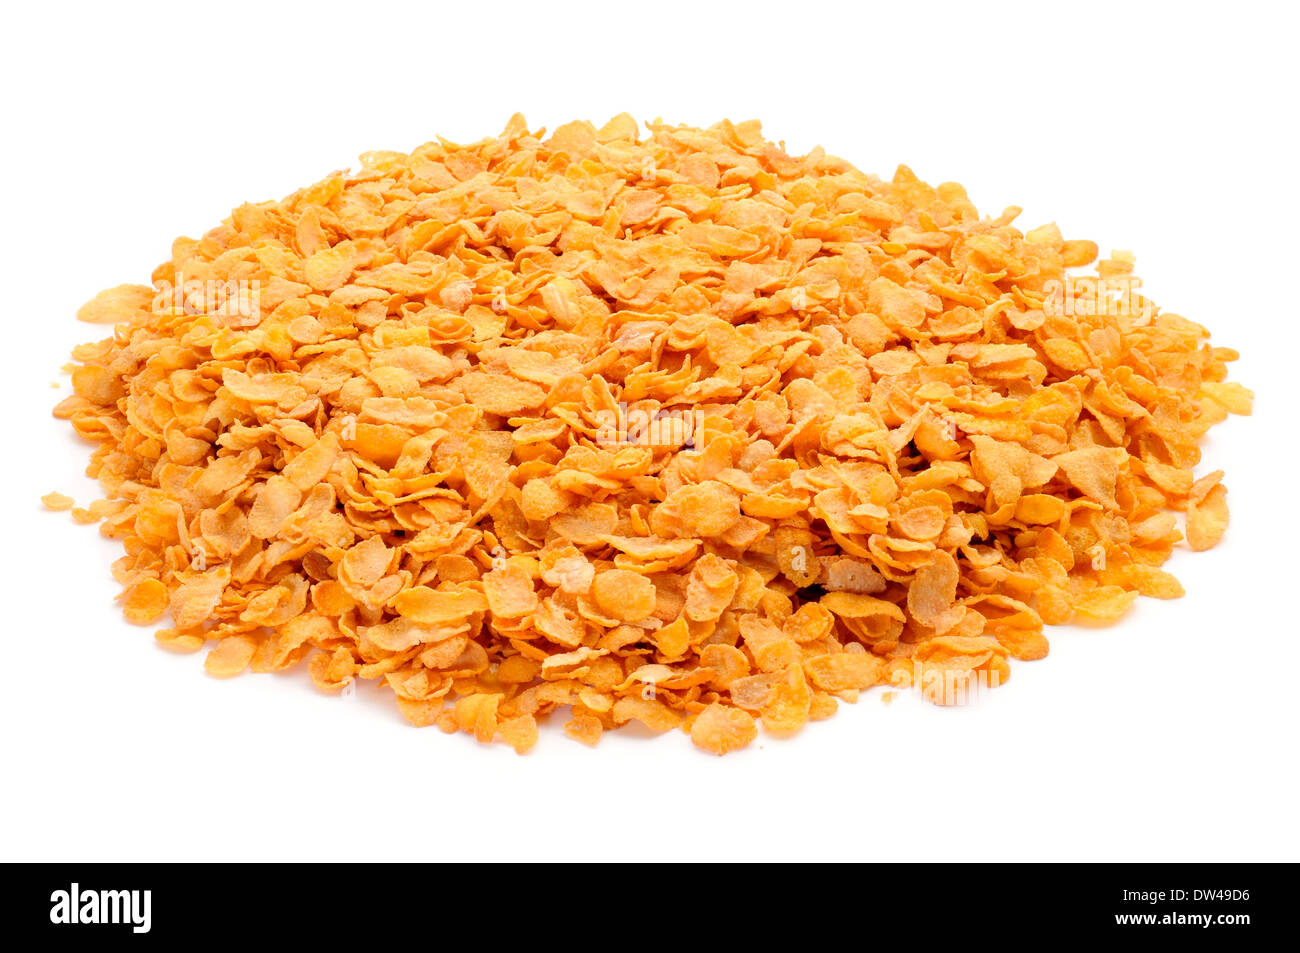 a pile of corn flakes on a white background - Stock Image